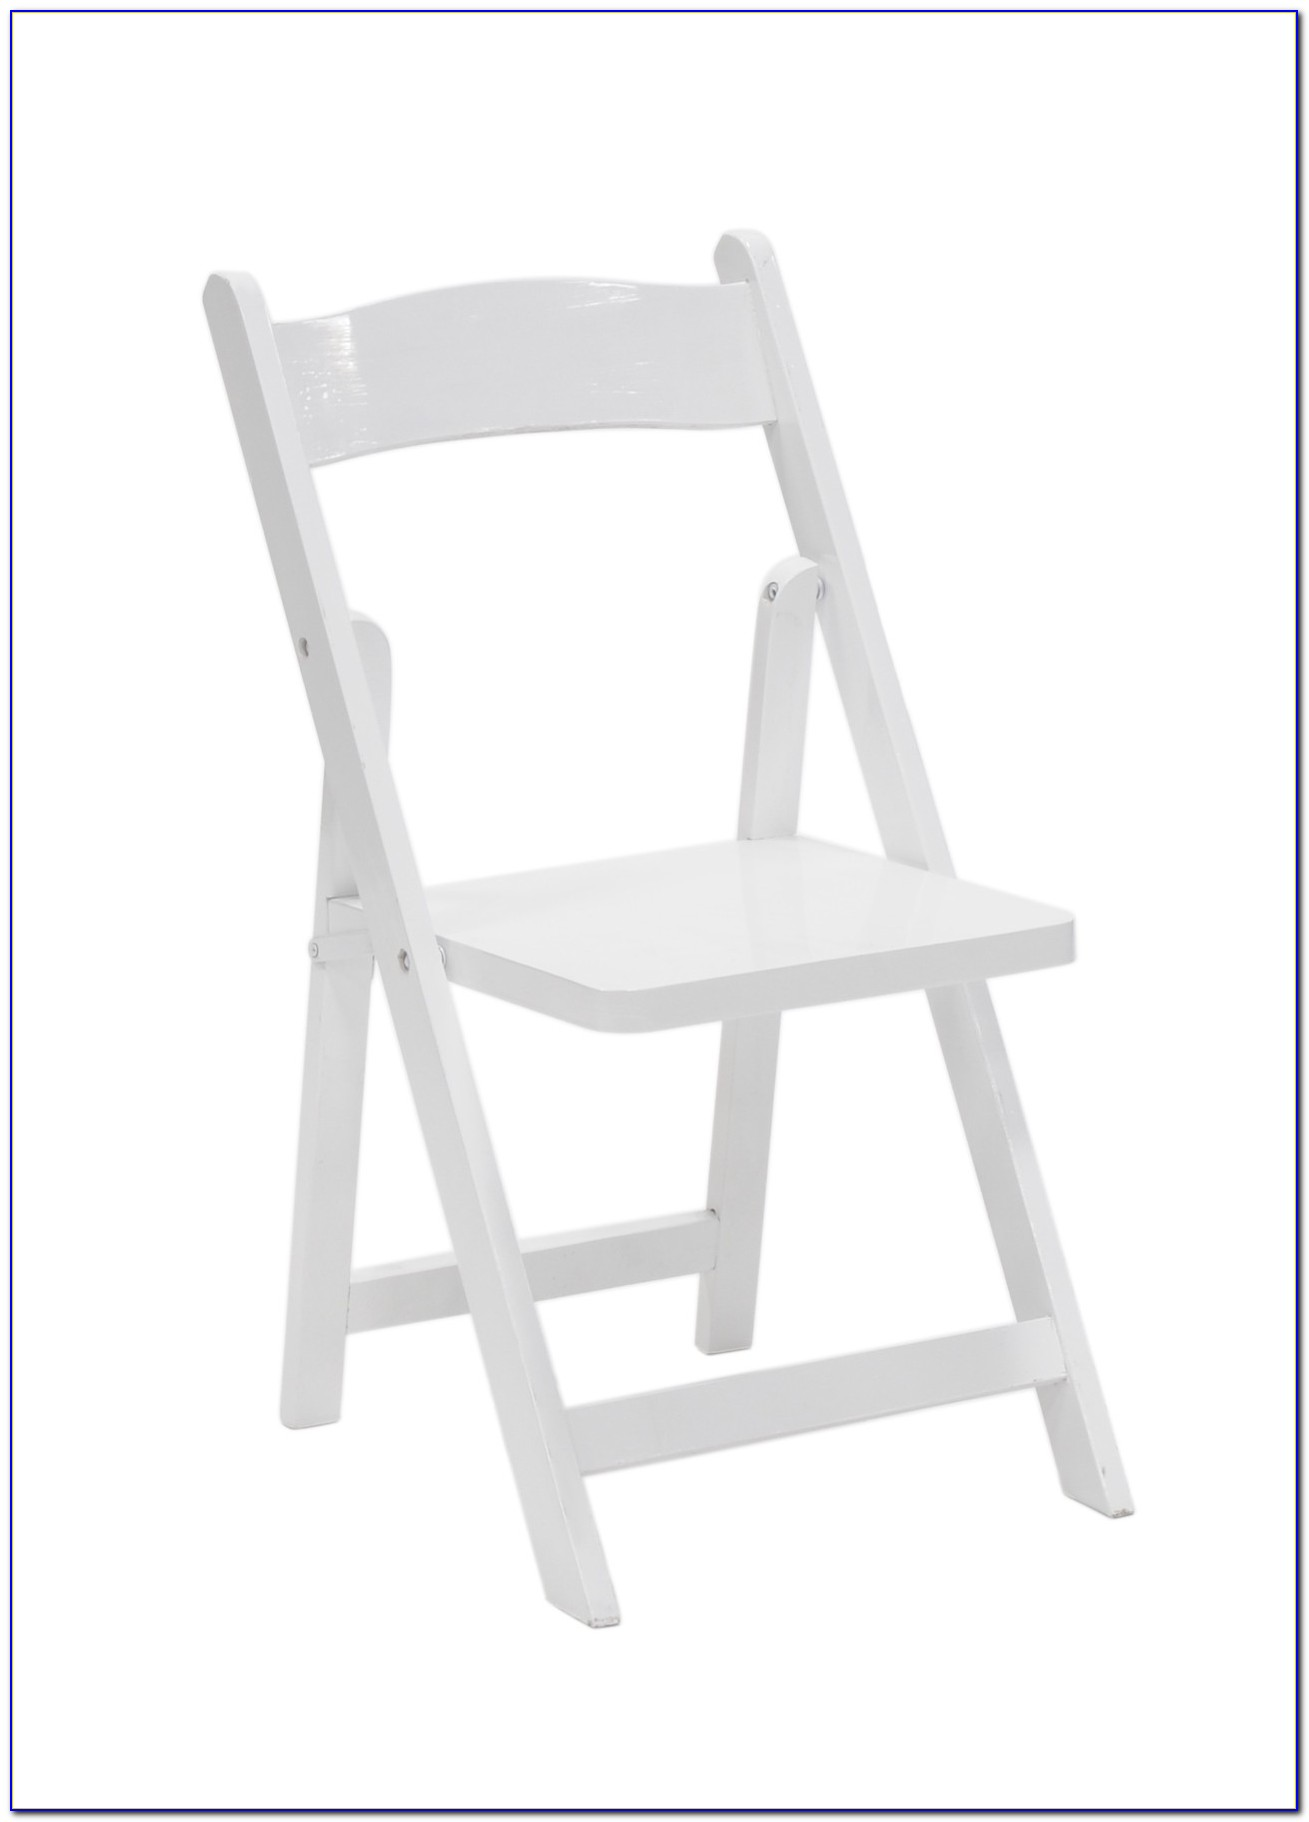 Children's Folding Chairs Amazon